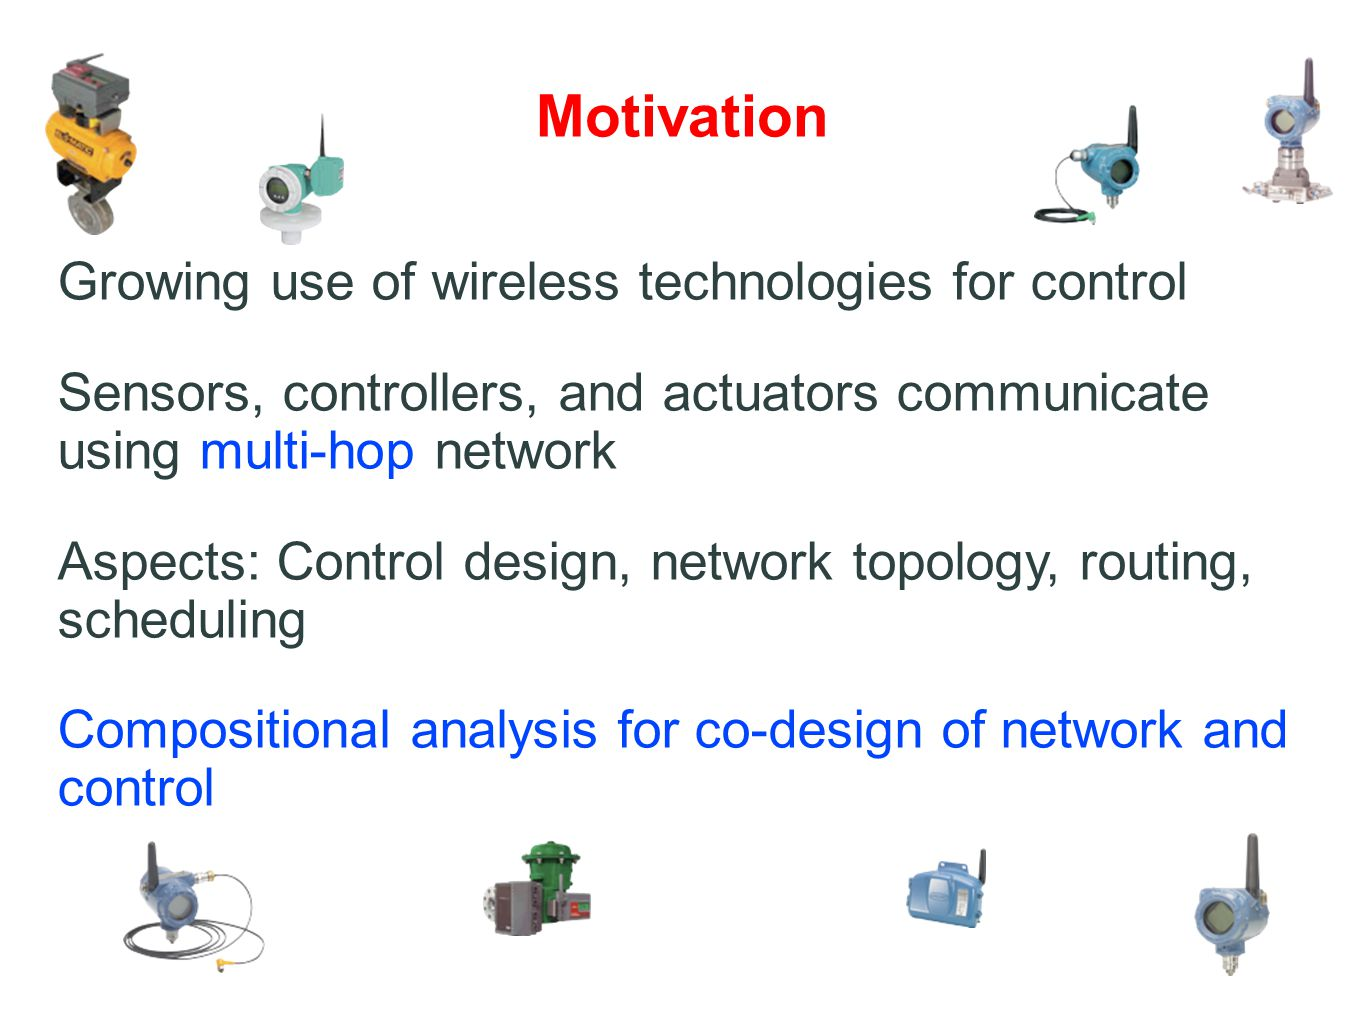 Motivation Growing use of wireless technologies for control Sensors, controllers, and actuators communicate using multi-hop network Aspects: Control design, network topology, routing, scheduling Compositional analysis for co-design of network and control